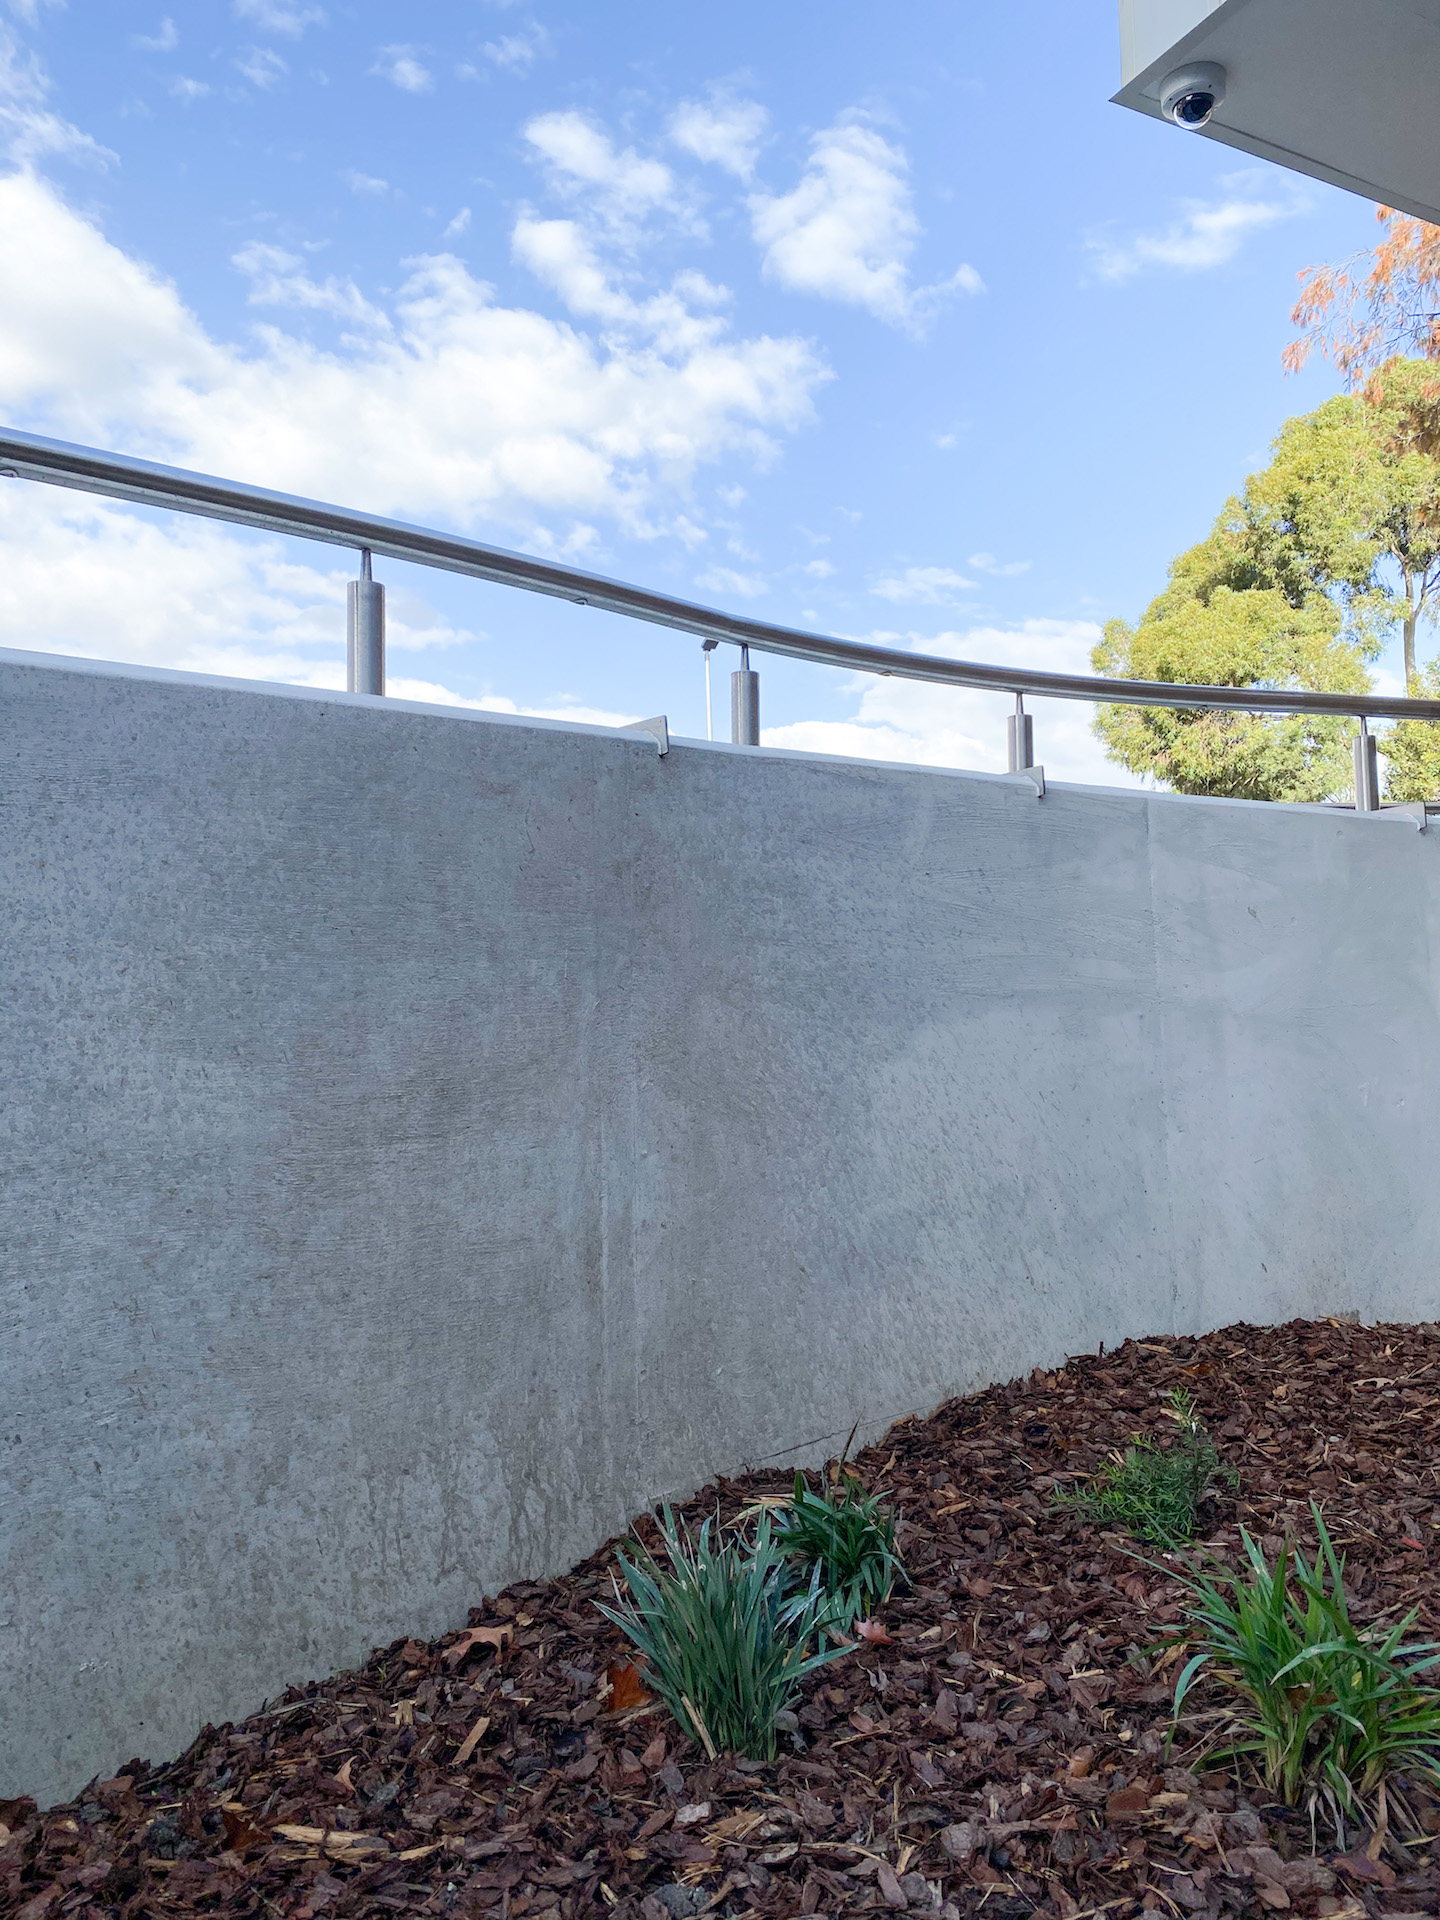 Curved In-Situ retaining wall.